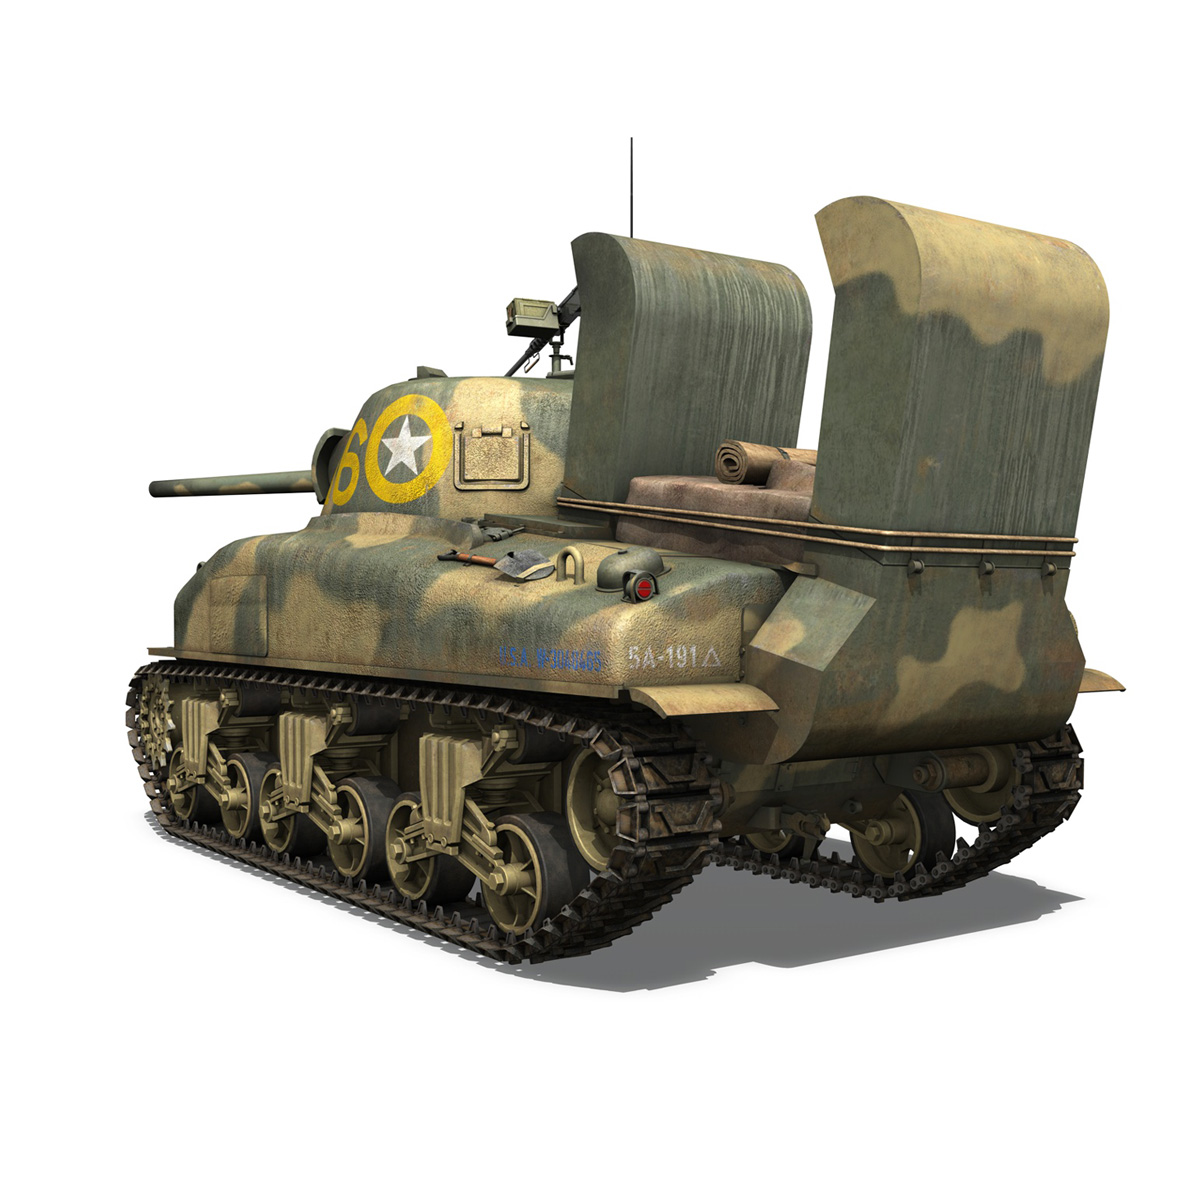 m4a1 sherman – 16 3d model 3ds fbx c4d lwo obj 273054